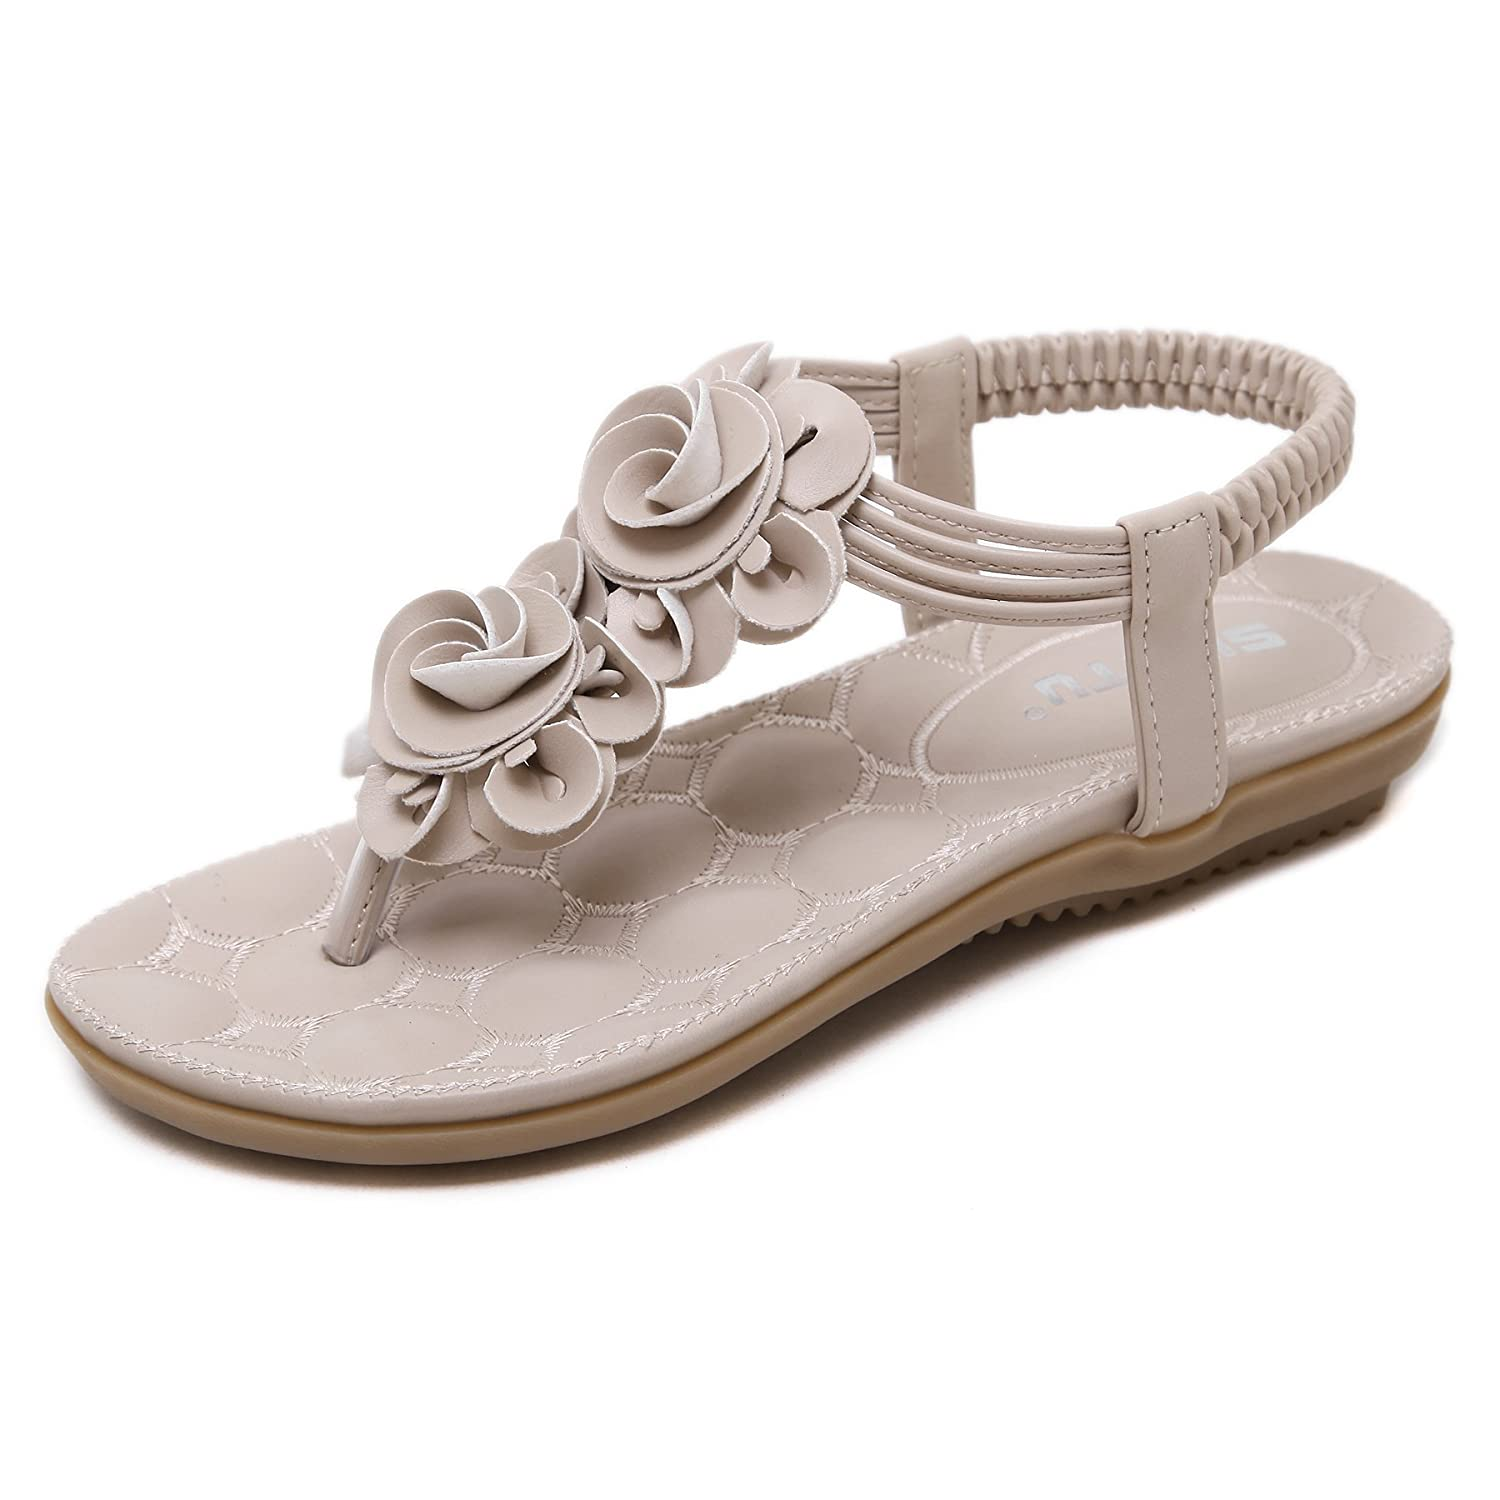 65a2aa1236e Promotion News Buy This Sandals Together With Sports Bras(3pcs In A  Package)